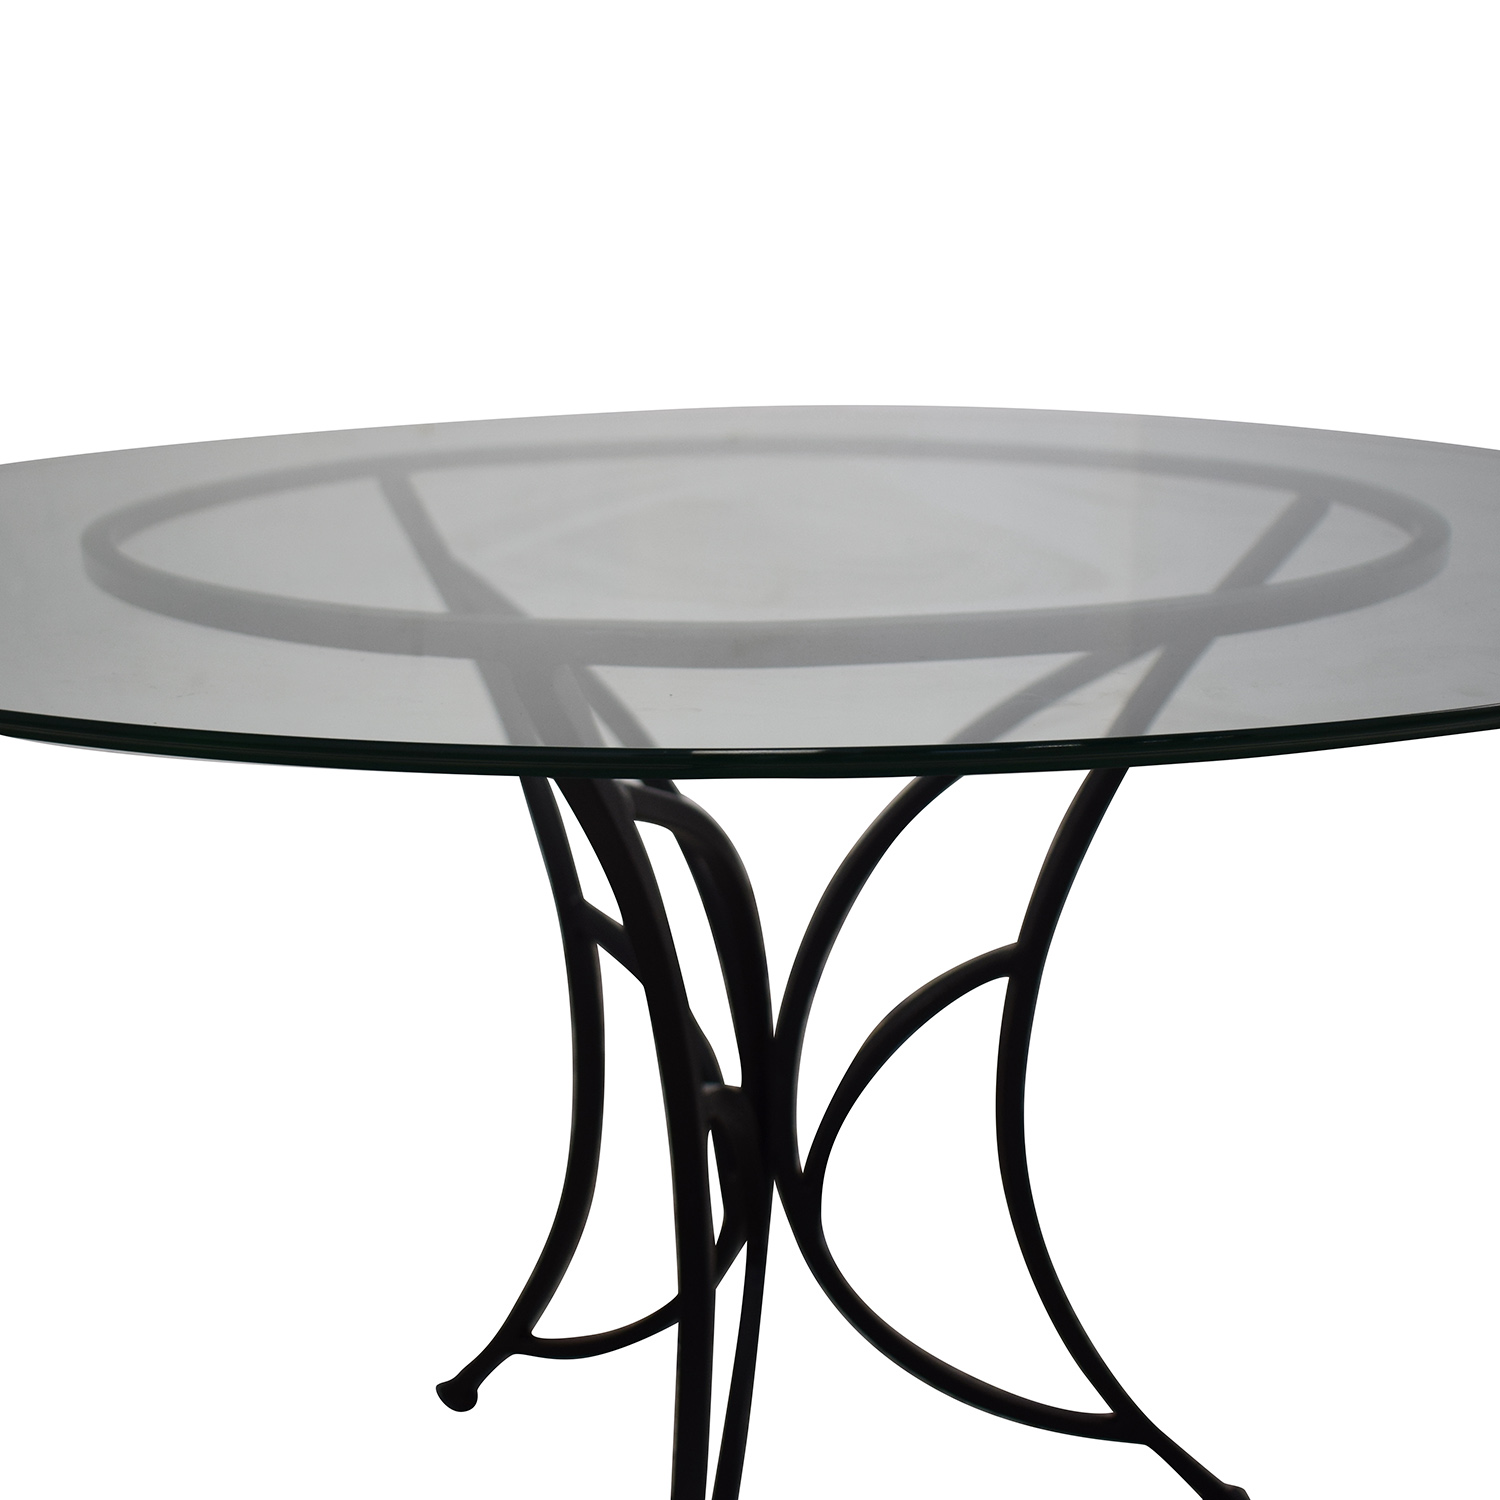 Pier One Glass Top Dining Table / Dinner Tables